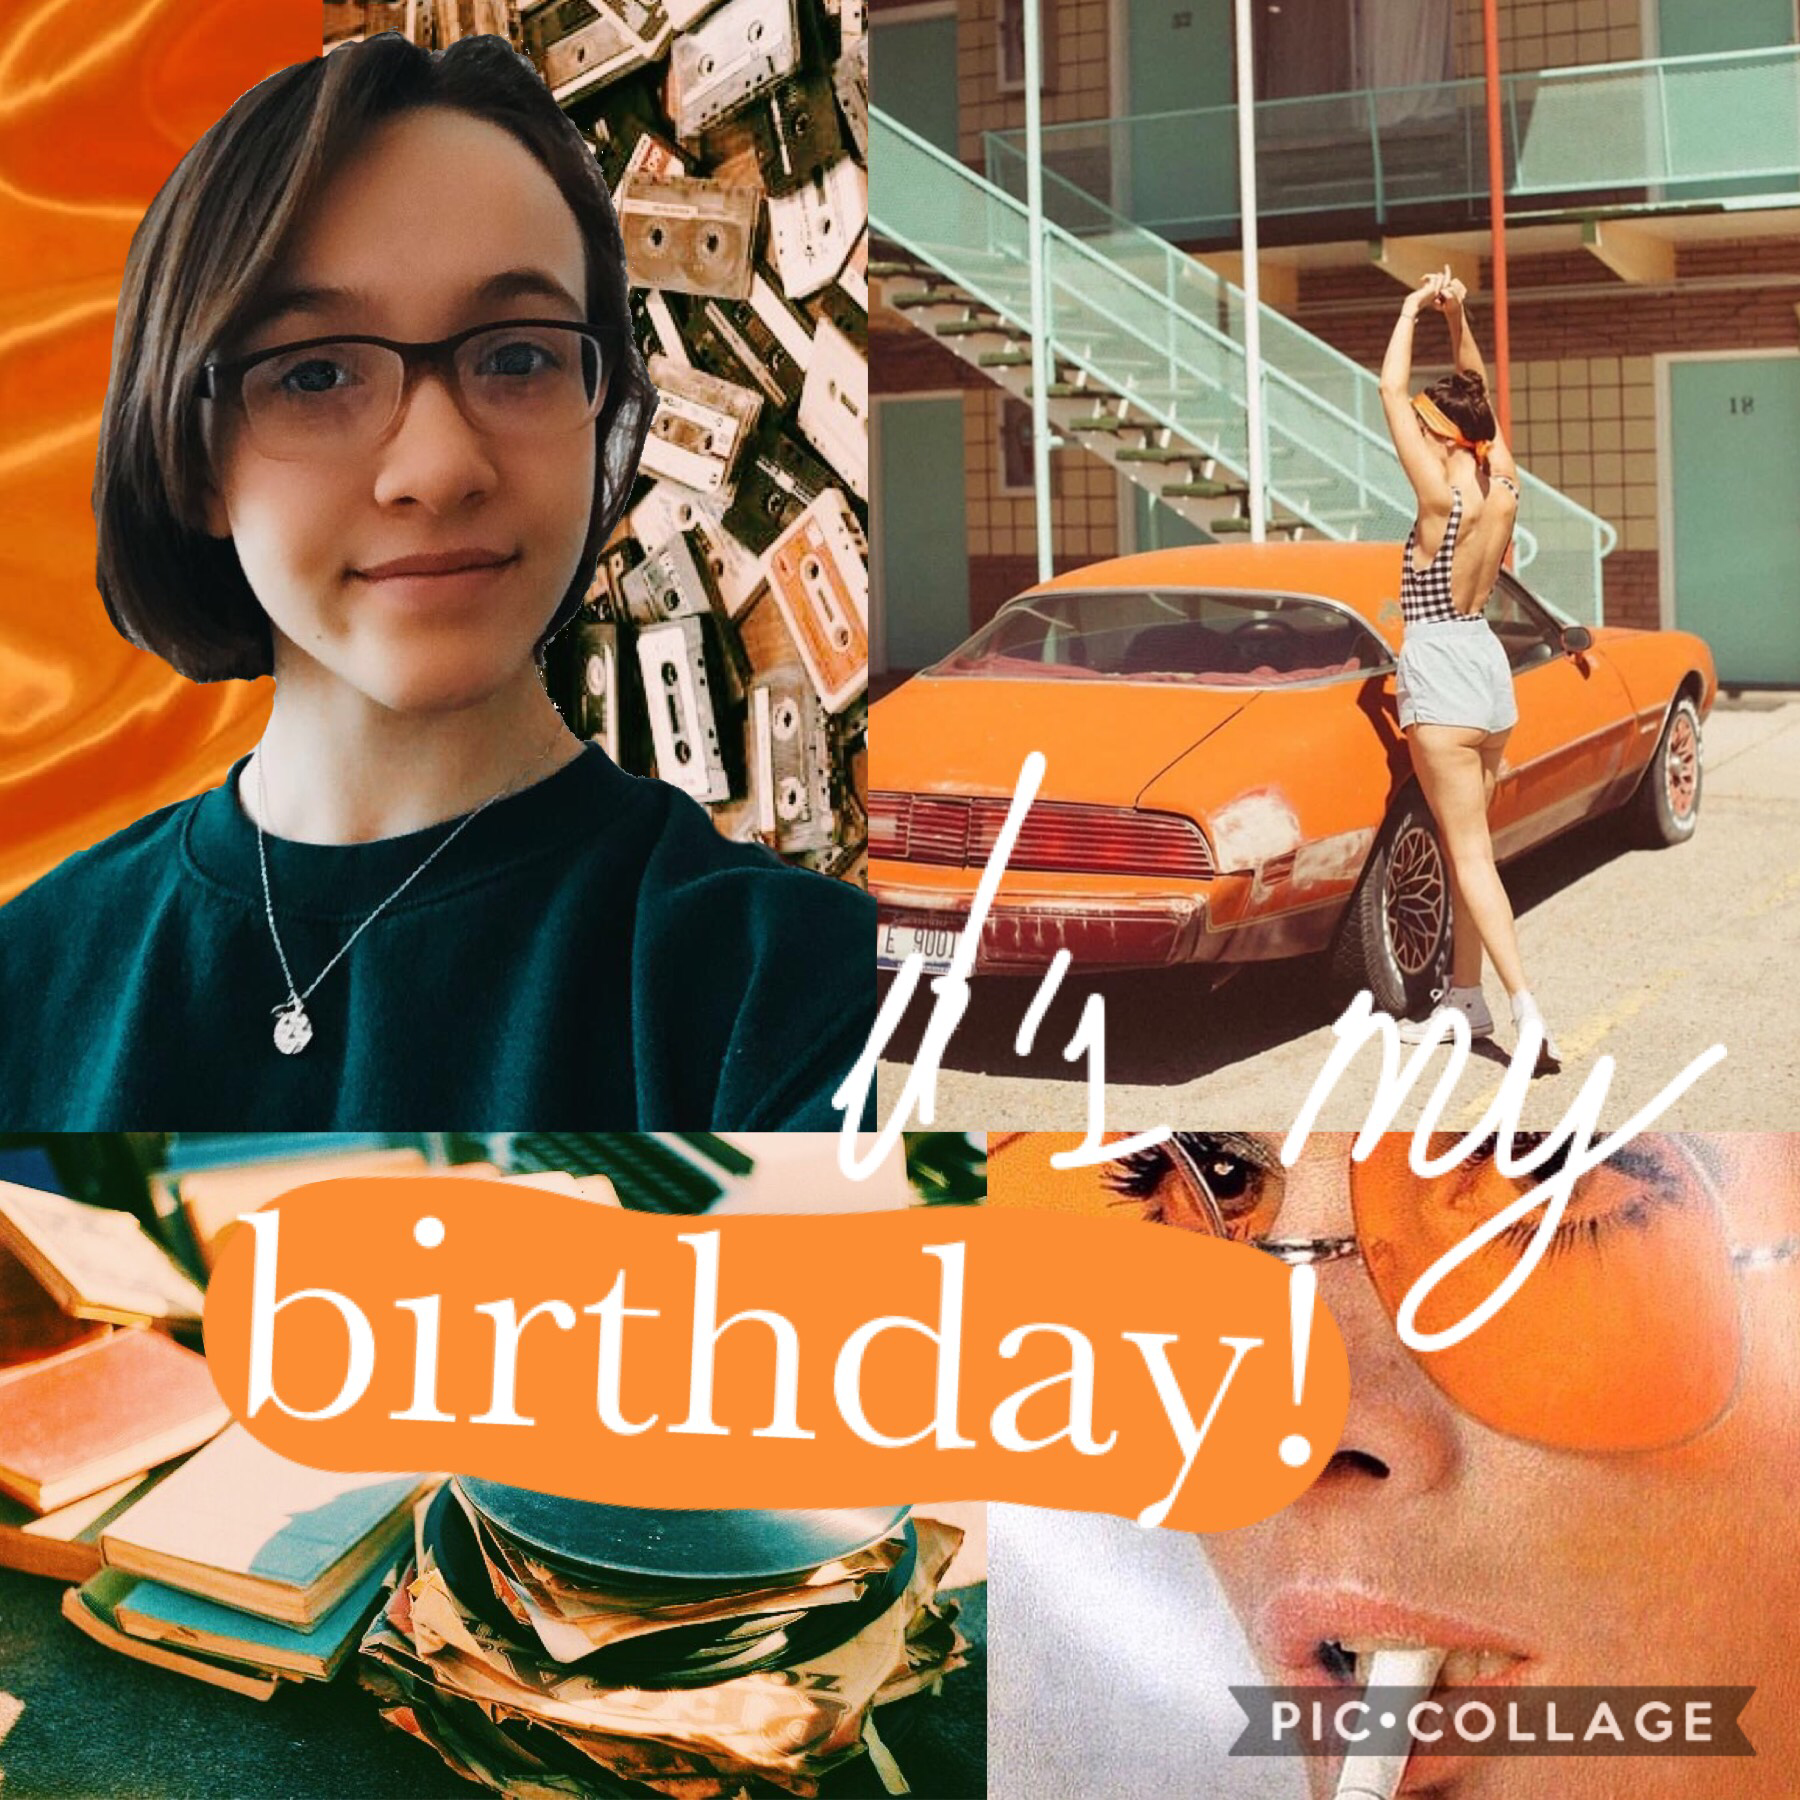 tap MOAWH HA HA I MADE A PNG OF MYSELF AHHHHHHHHH yeas, it is my birthday. i bet y'all don't know how old i am! take a guess :) i'm also celebrating 200 followers! yeeeeeeeeet🤙🏼 y'all want a contest?